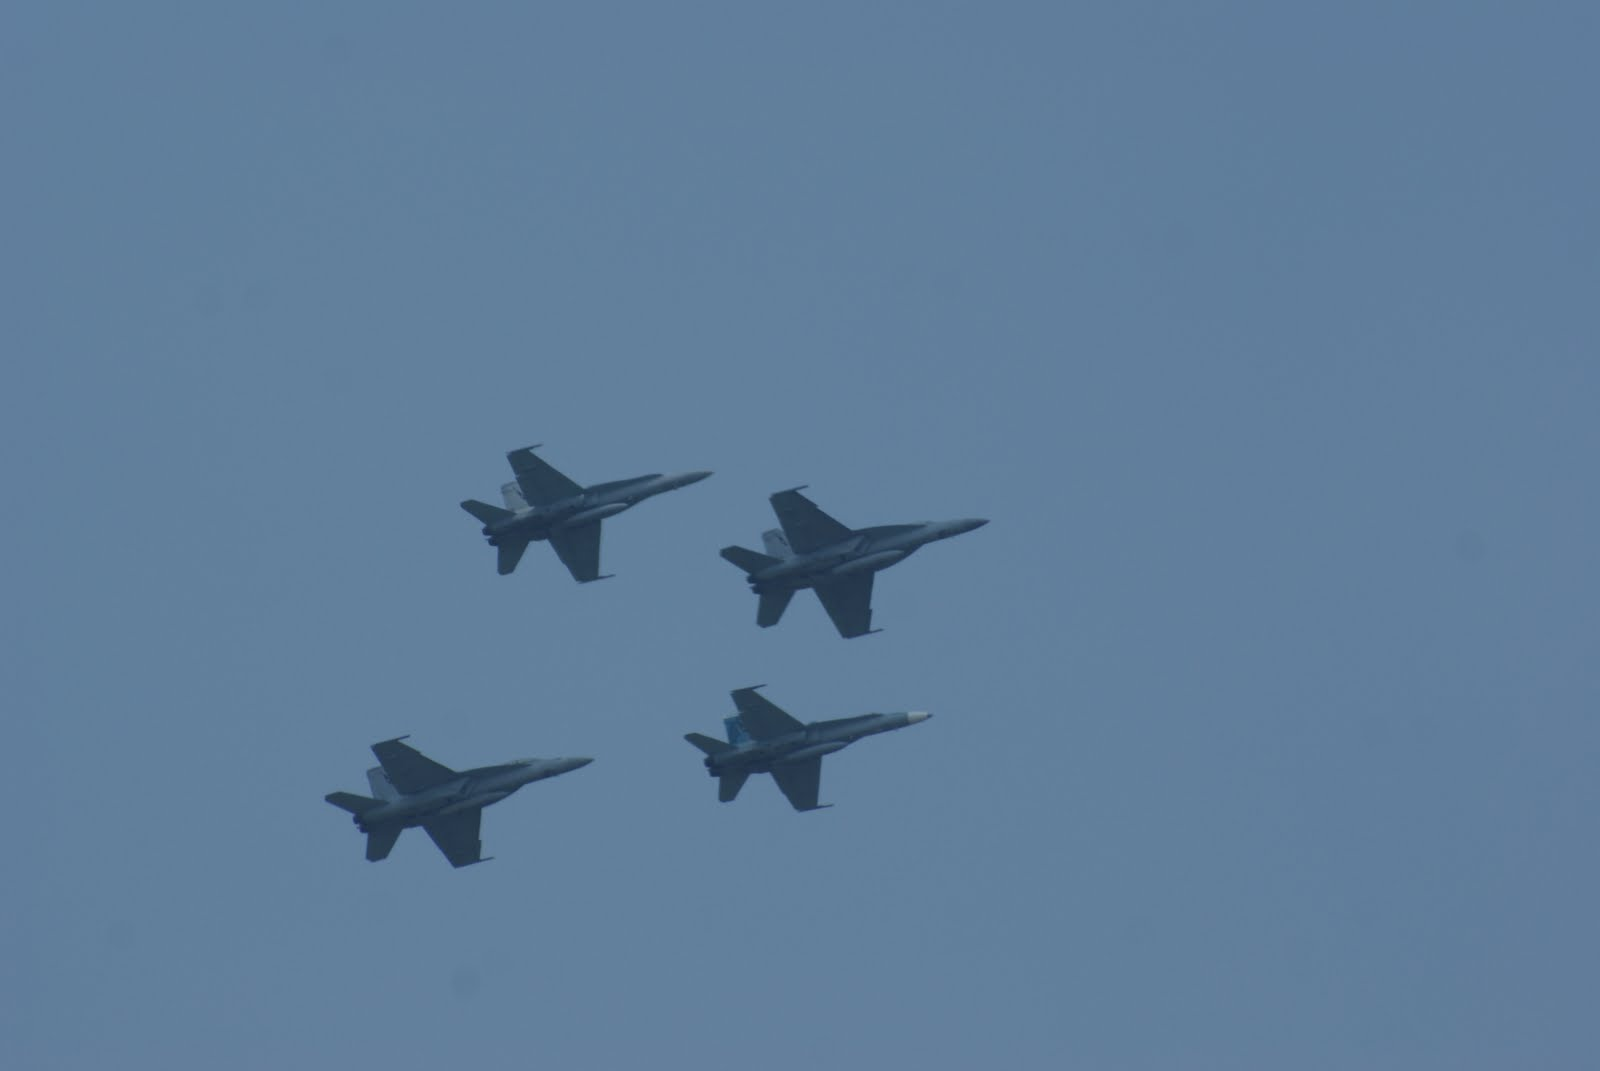 indy 500 fly over in zionsville